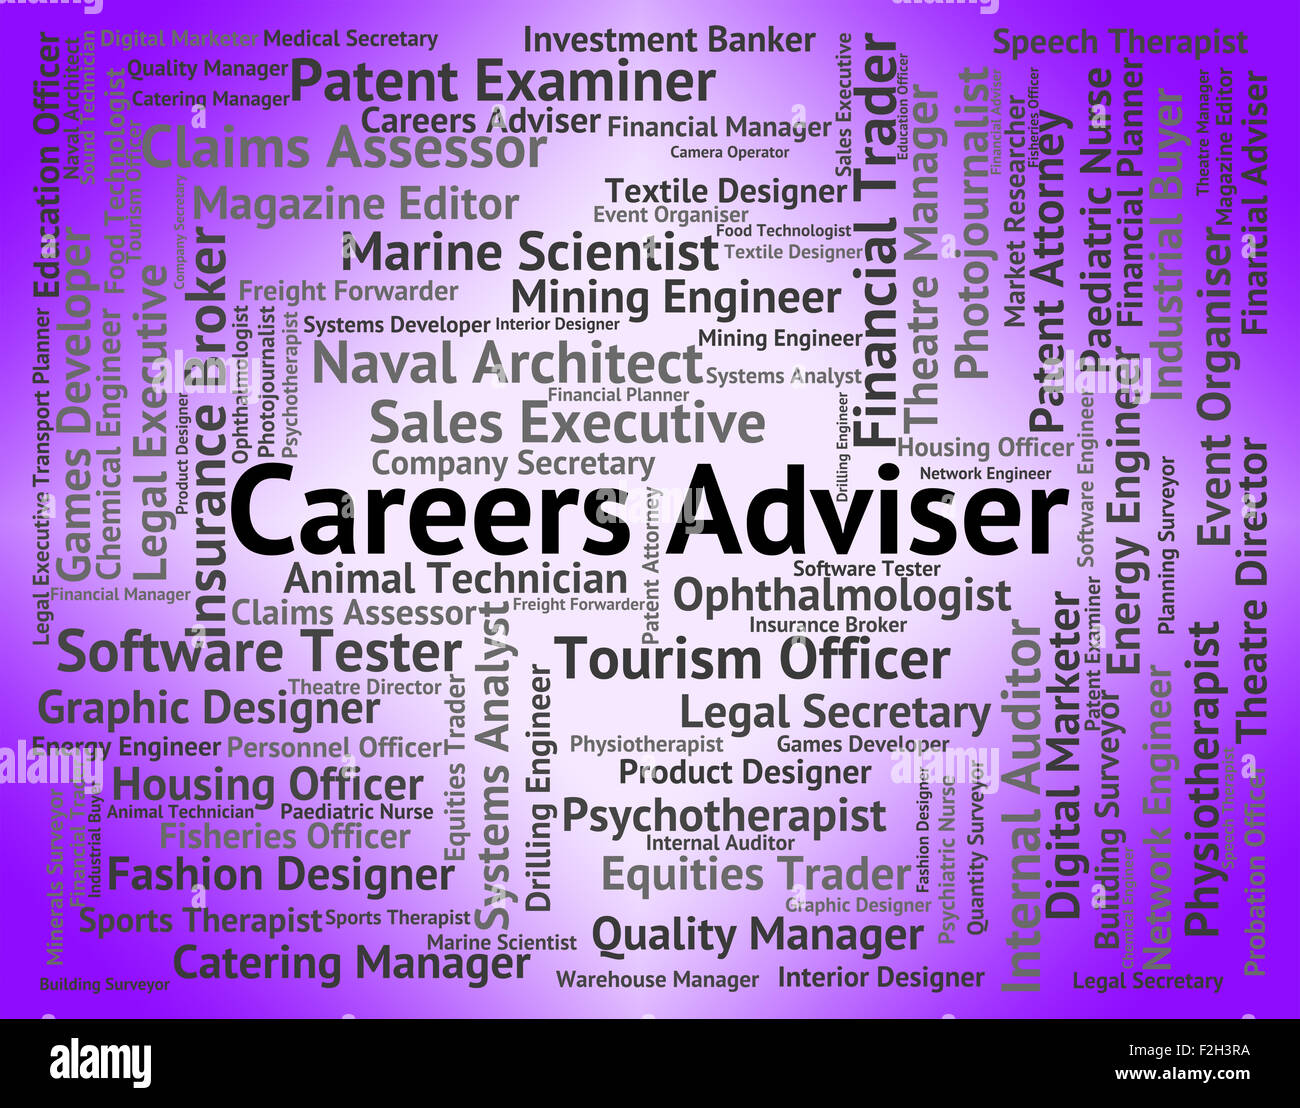 Careers Adviser Representing Position Employment And Counsellor - Stock Image